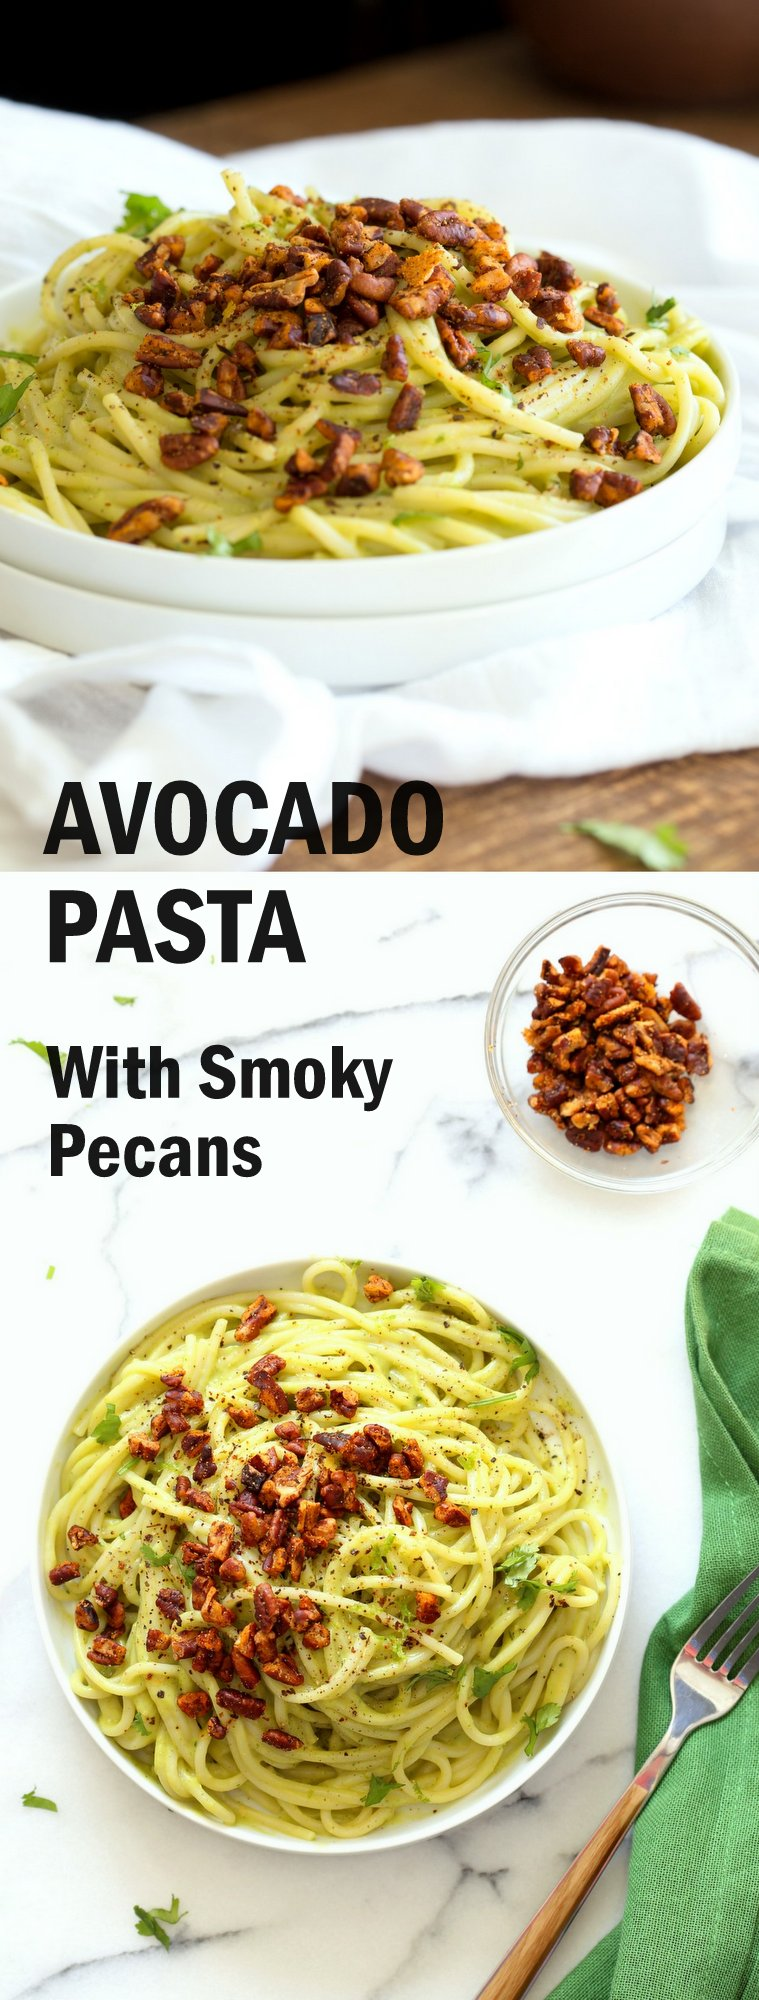 Vegan Avocado Pasta with Smoky Pecans. This 20 Minute Creamy Avocado Basil Sauce is great over spaghetti or zoodles. Serve with smoky spicy pecans for amazing flavor. #Vegan #Soyfree #Recipe. Can be #nutfree.#veganricha   VeganRicha.com